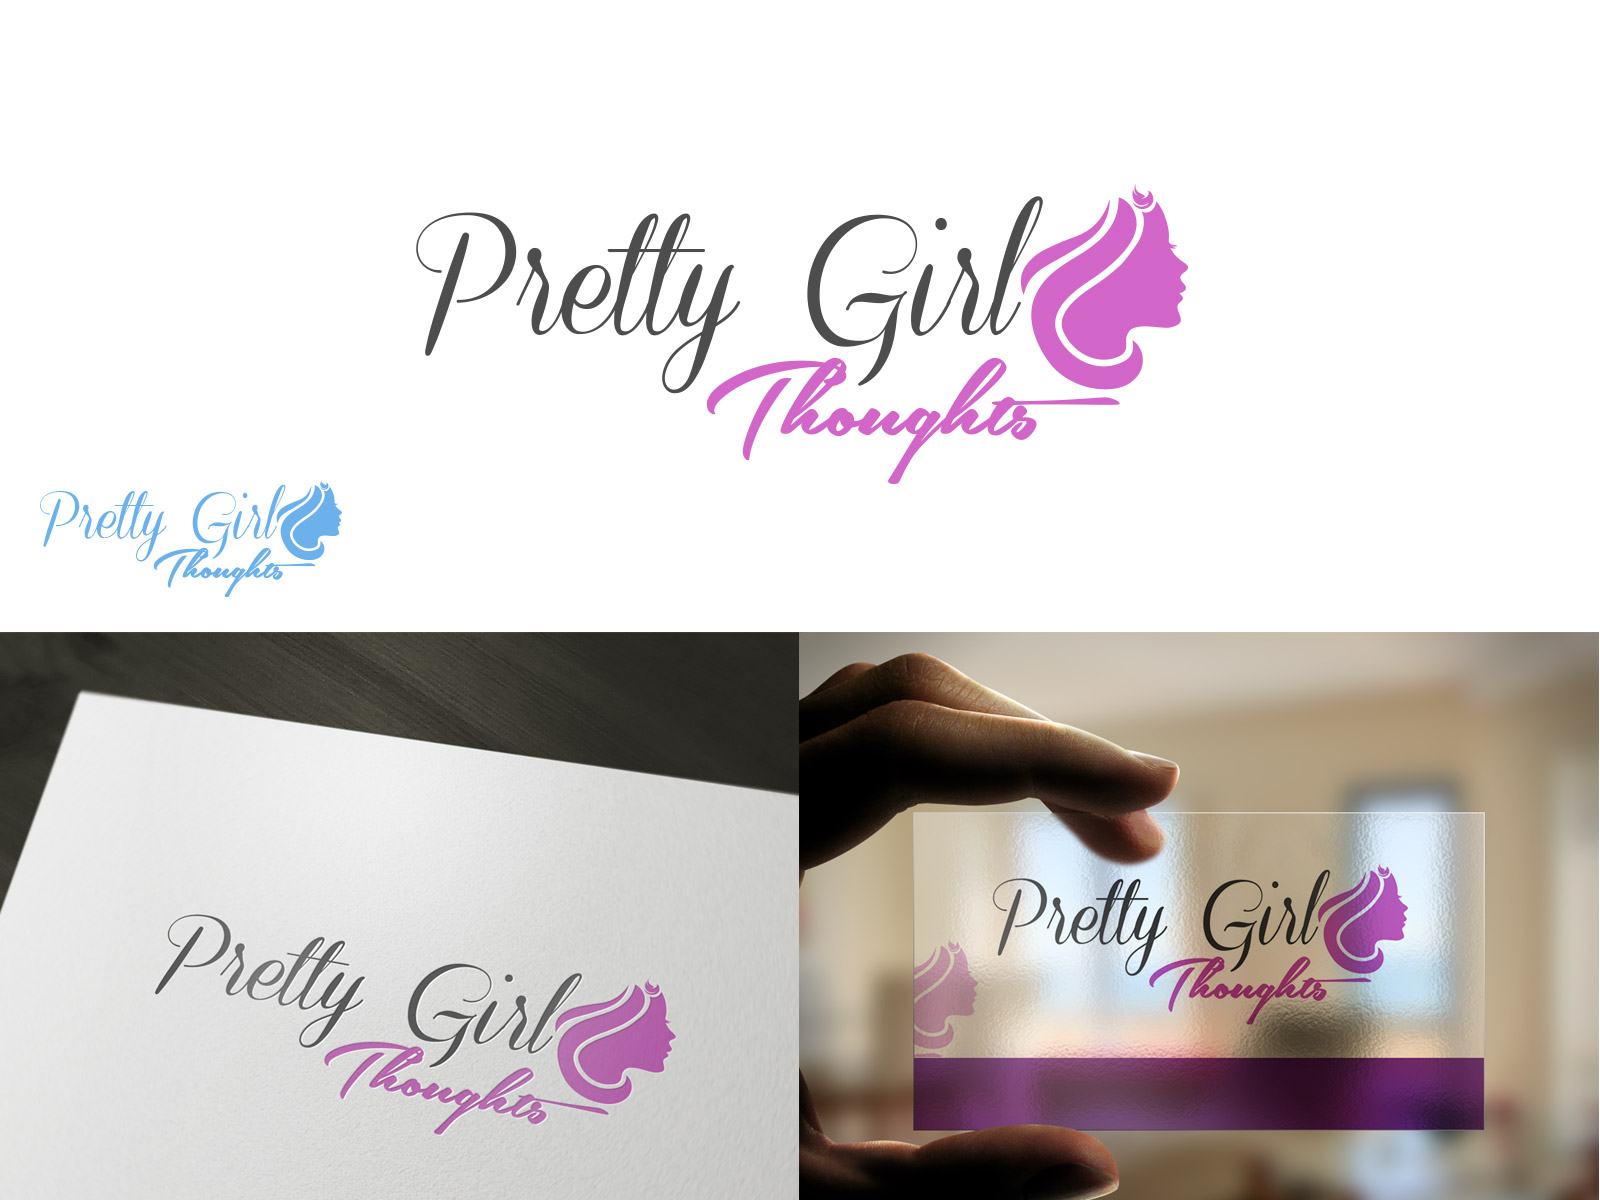 Logo Design by olii - Entry No. 63 in the Logo Design Contest Inspiring Logo Design for Pretty Girl Thoughts.